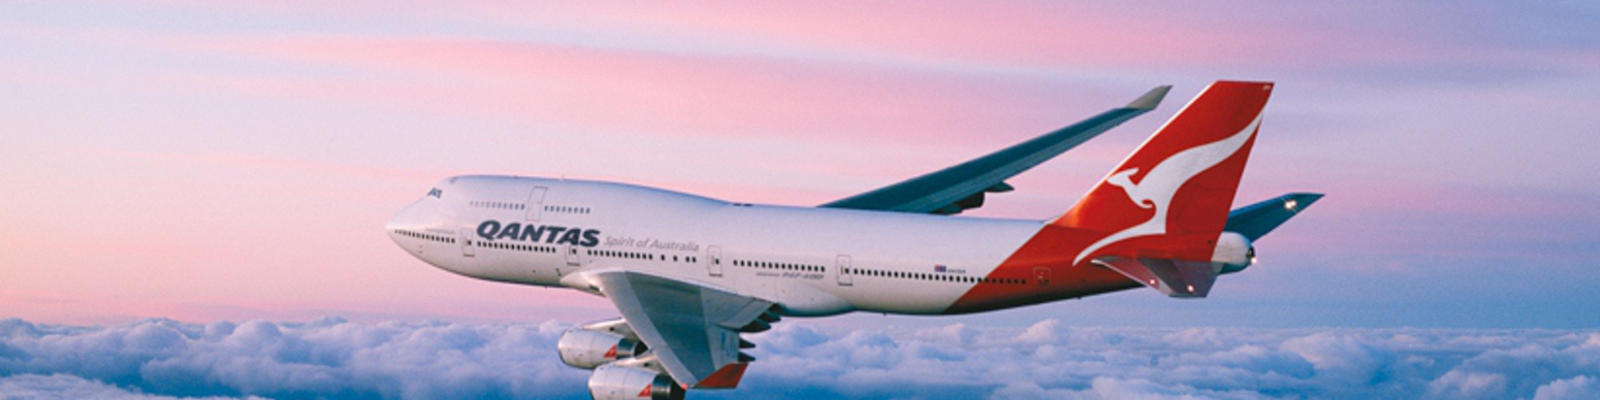 Qantas Cuts Seat Selection Fee For Many International Flights